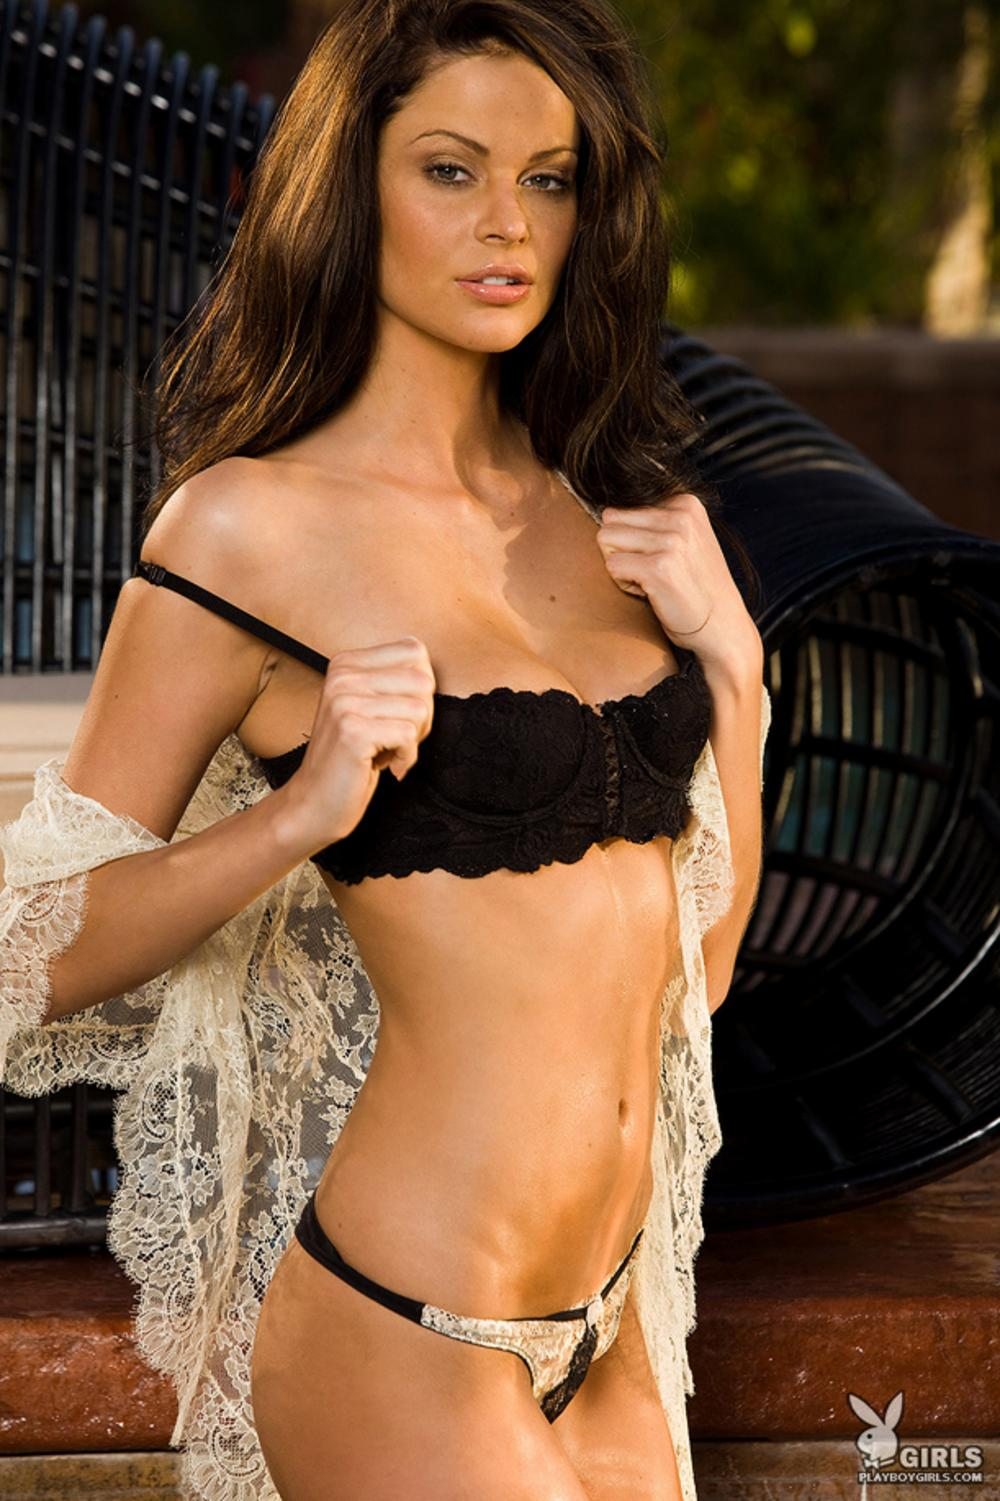 Playboy Girls Hd - A Blog About Playboy Girls And Nude -1887